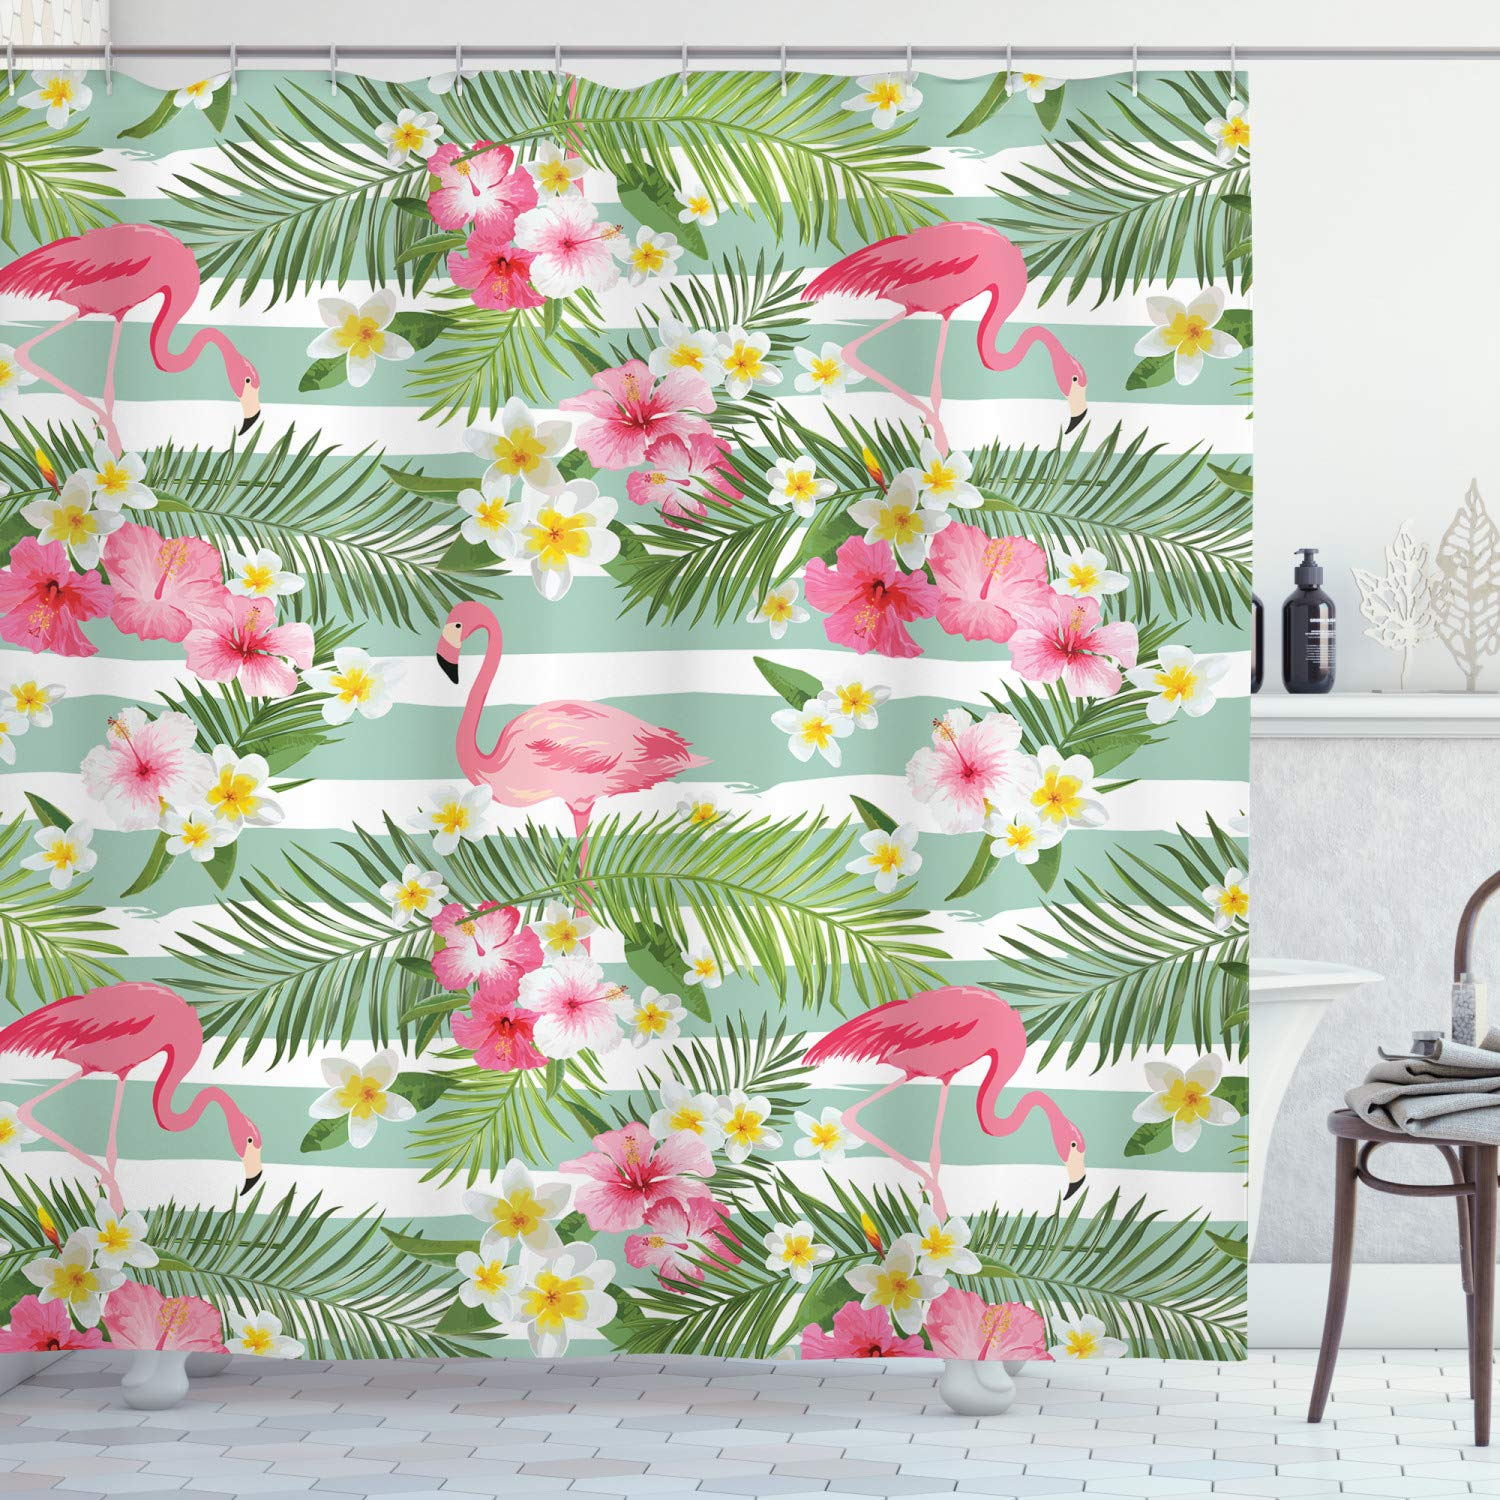 """Ambesonne Flamingo Shower Curtain, Flamingos with Exotic Hawaiian Leaves Flowers on Striped Vintage Background, Cloth Fabric Bathroom Decor Set with Hooks, 70"""" Long, Green Pink"""